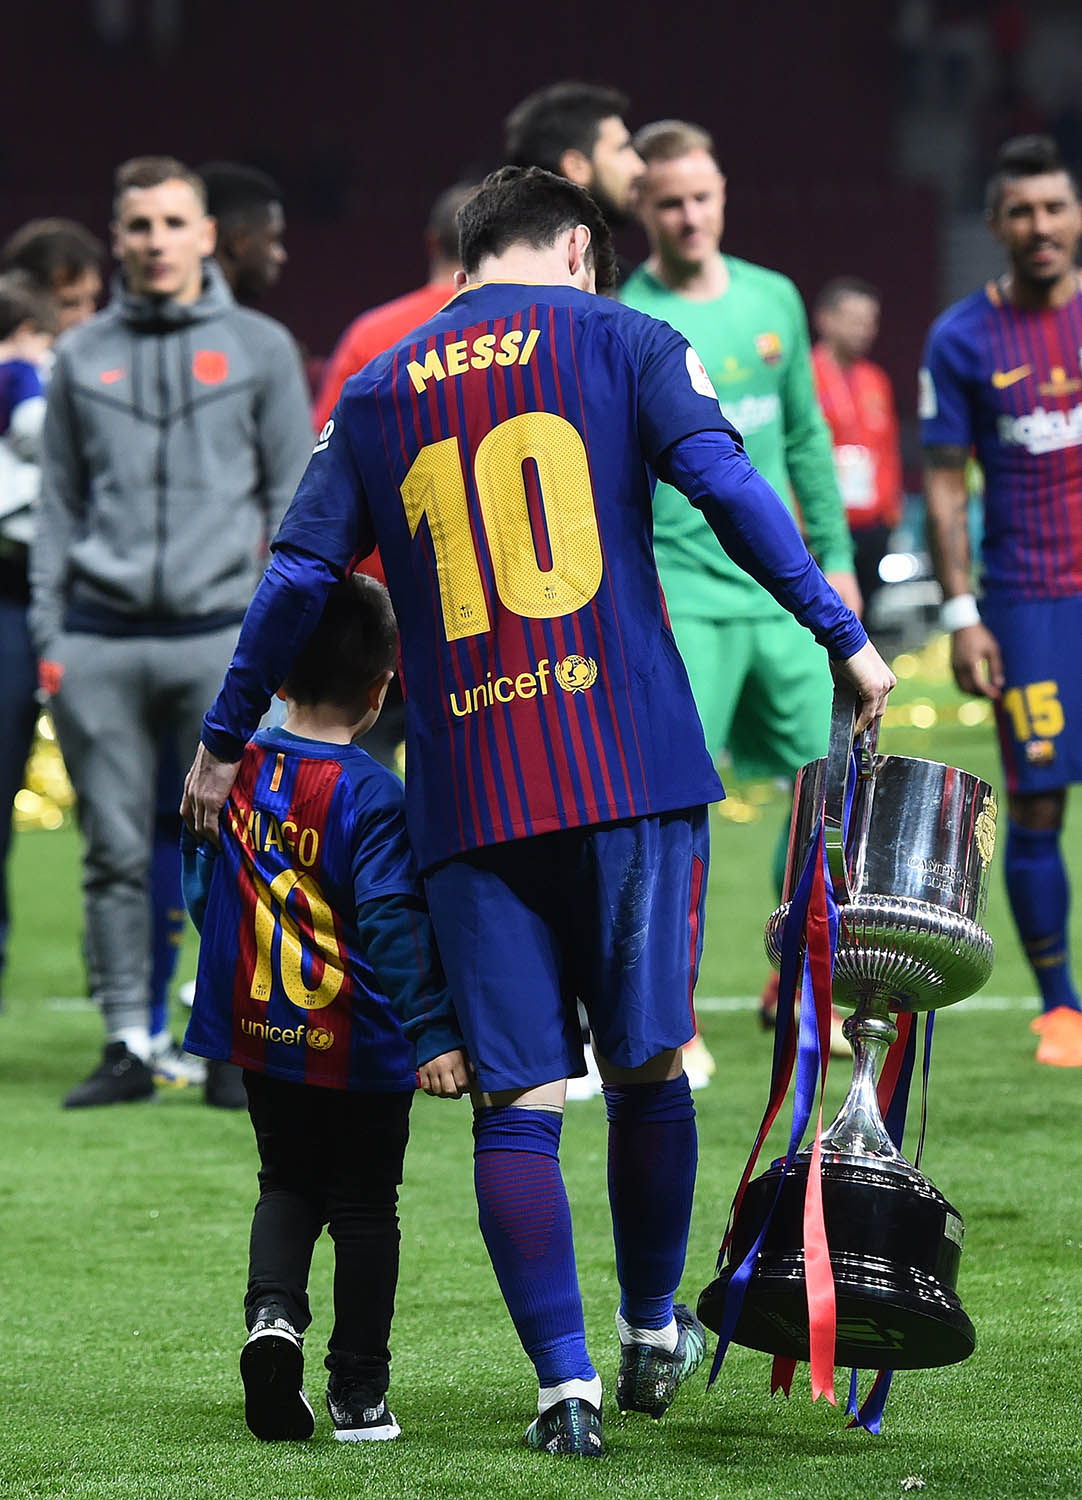 messi_son_trophy